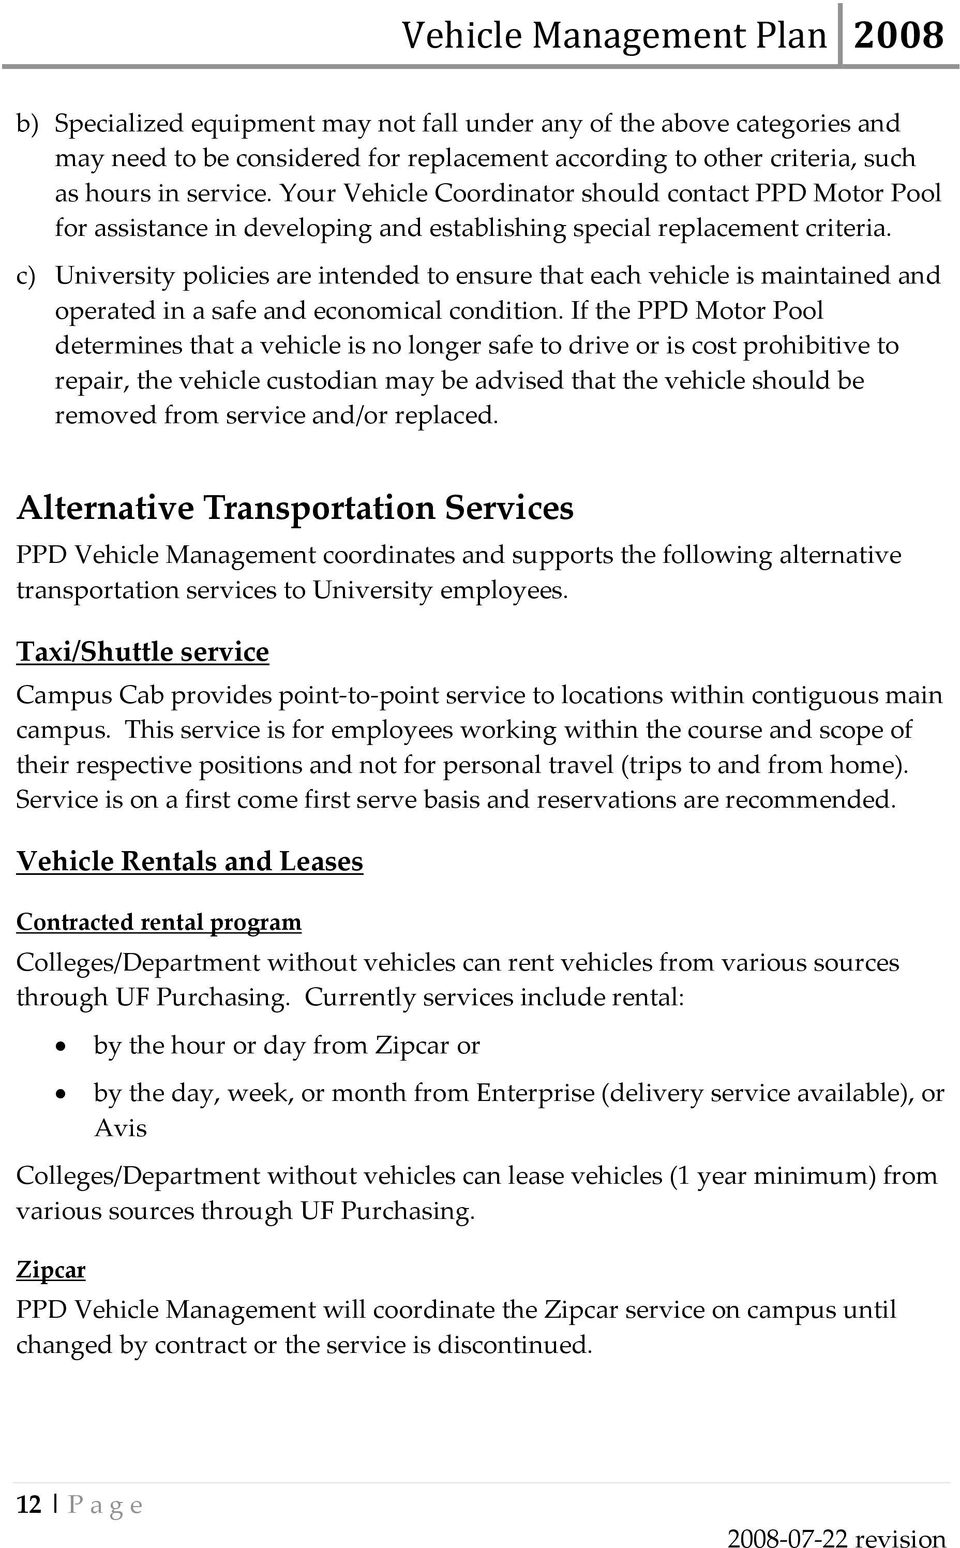 c) University policies are intended to ensure that each vehicle is maintained and operated in a safe and economical condition.